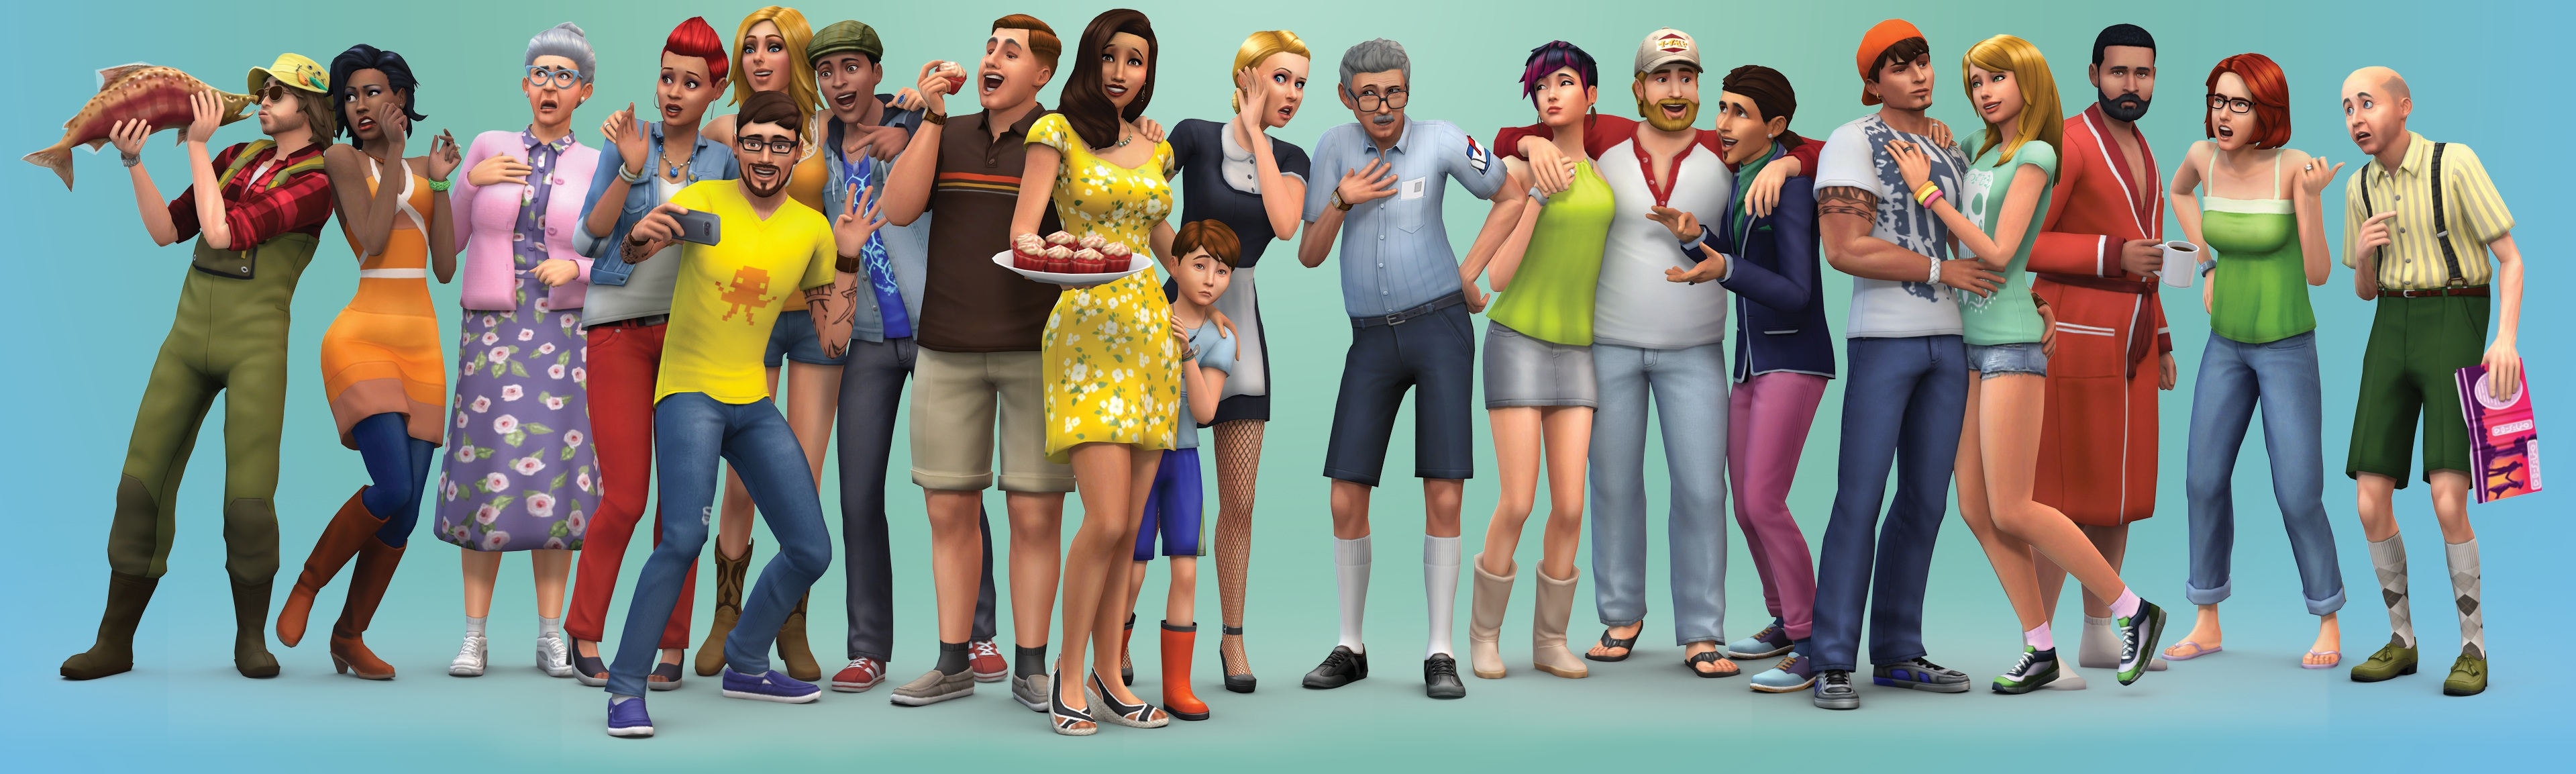 The Sims 4 Gets Flexible New Gender Customization Options The Sims 4 The Sims are back